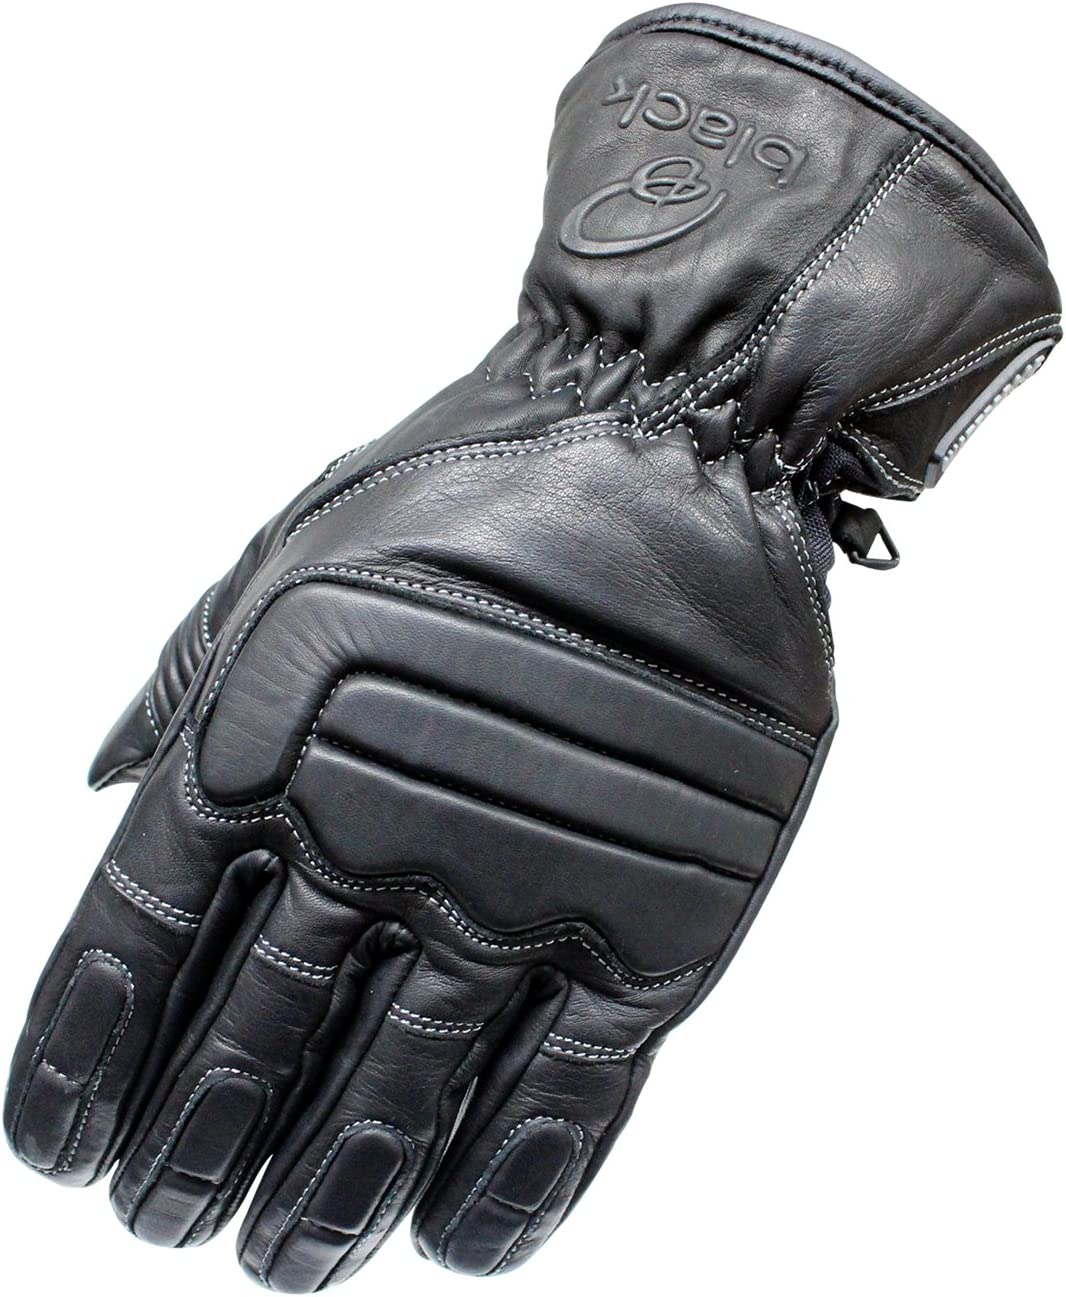 Black Charge Leather Motorcycle Gloves